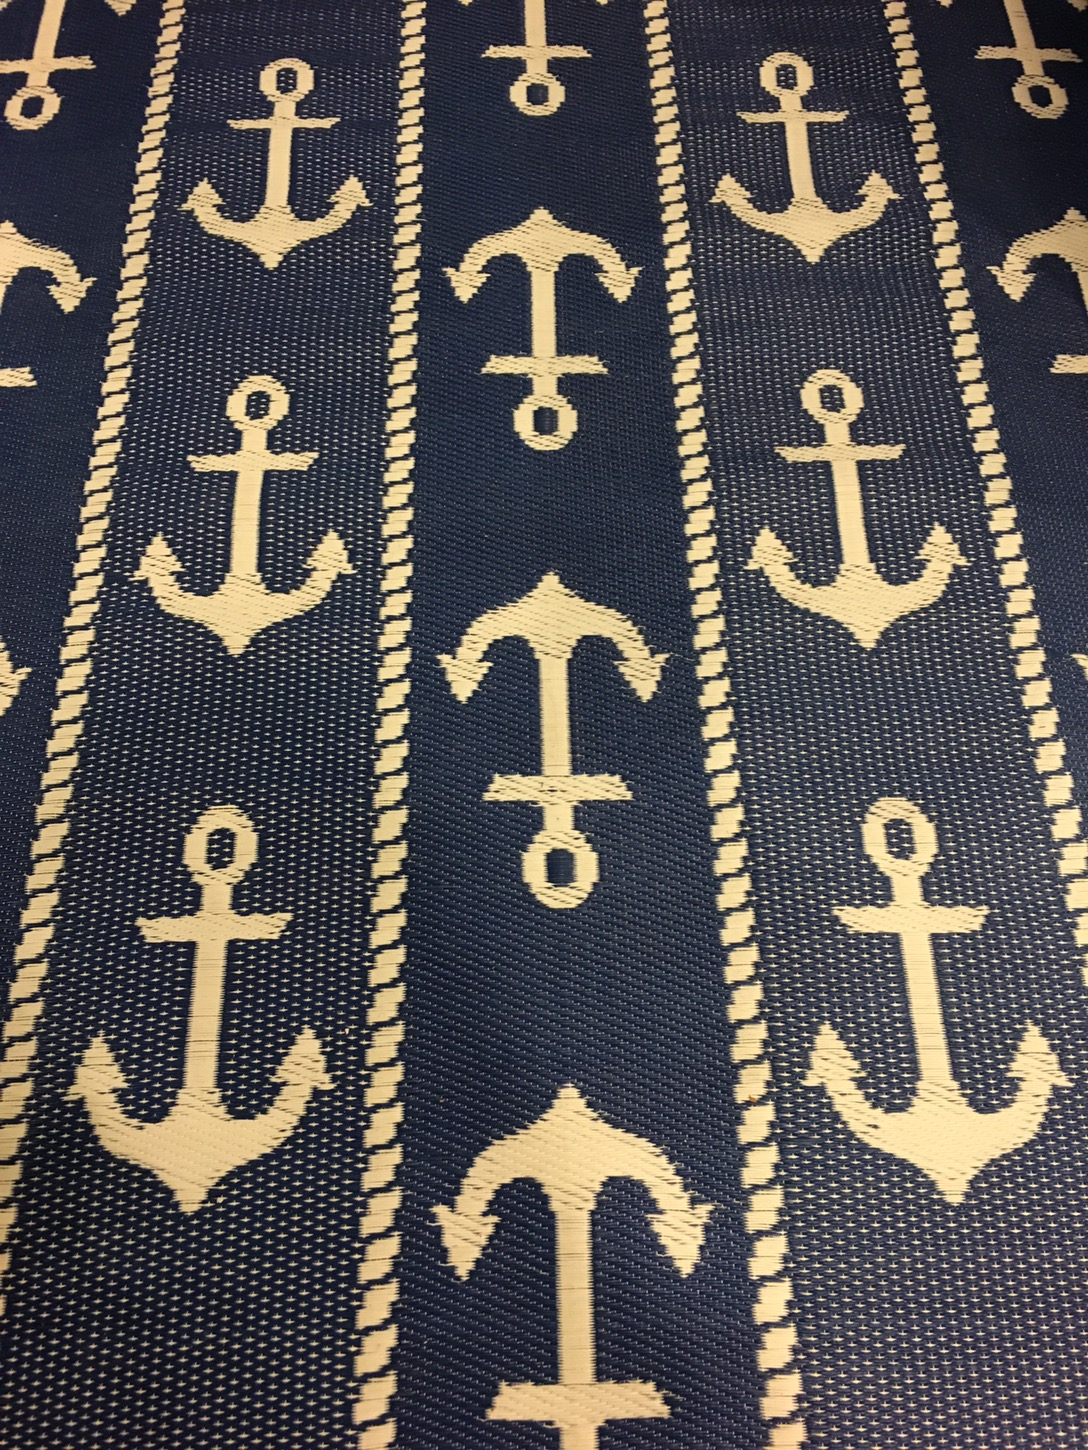 Mariachi Imports Added The Anchor Outdoor Rug At The